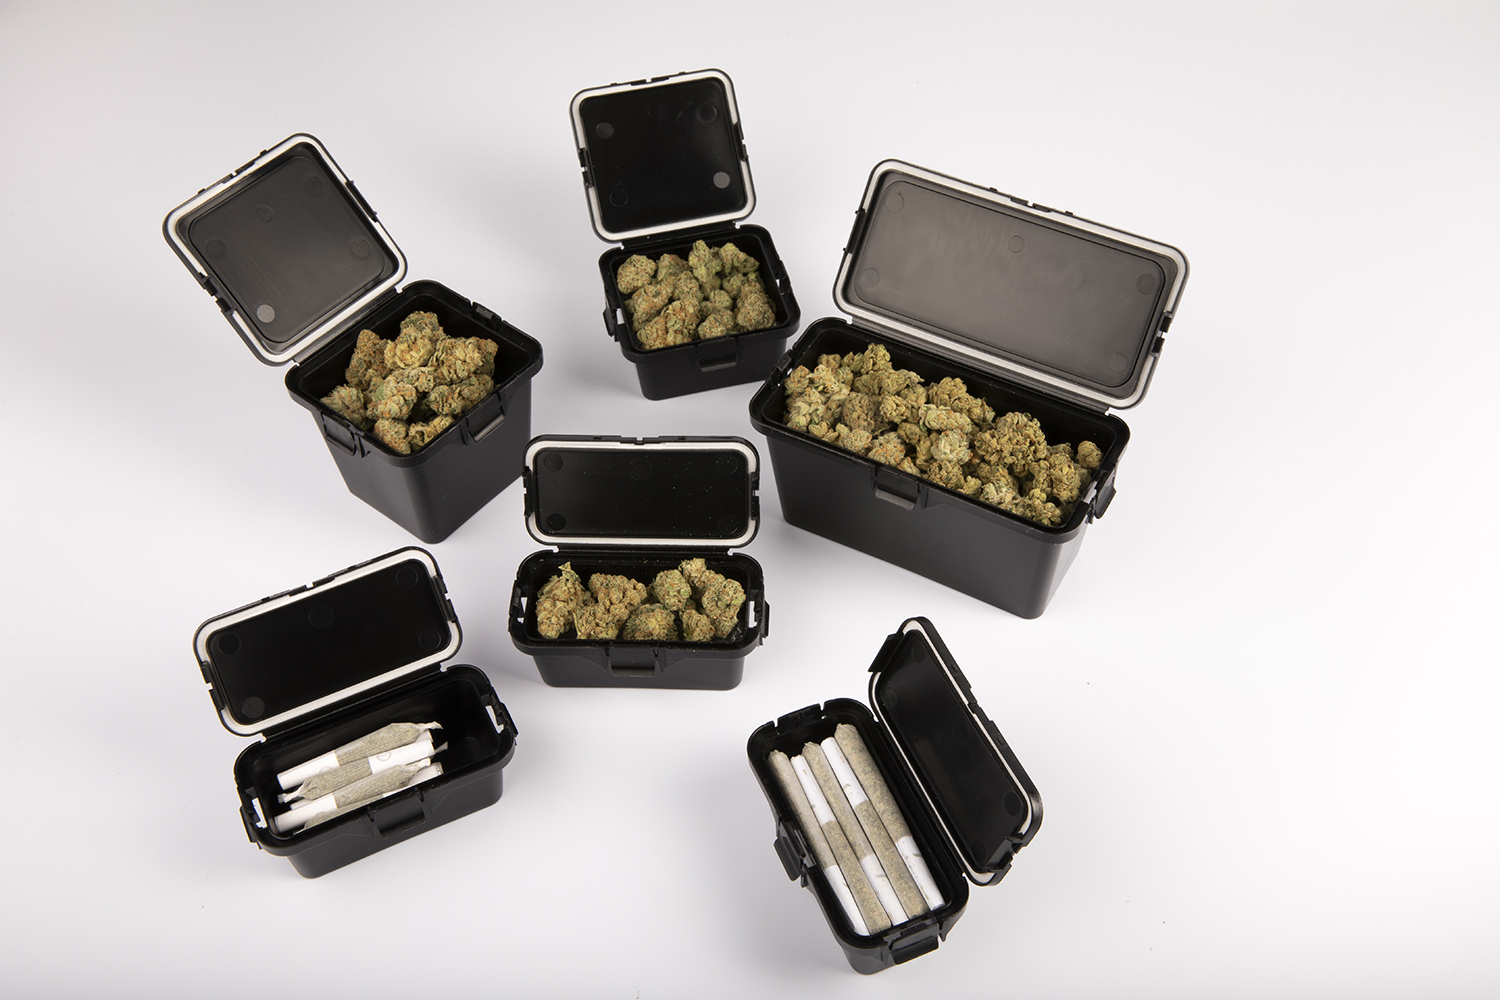 Reuse your STO Responsible cannabis packaging to store anything you like